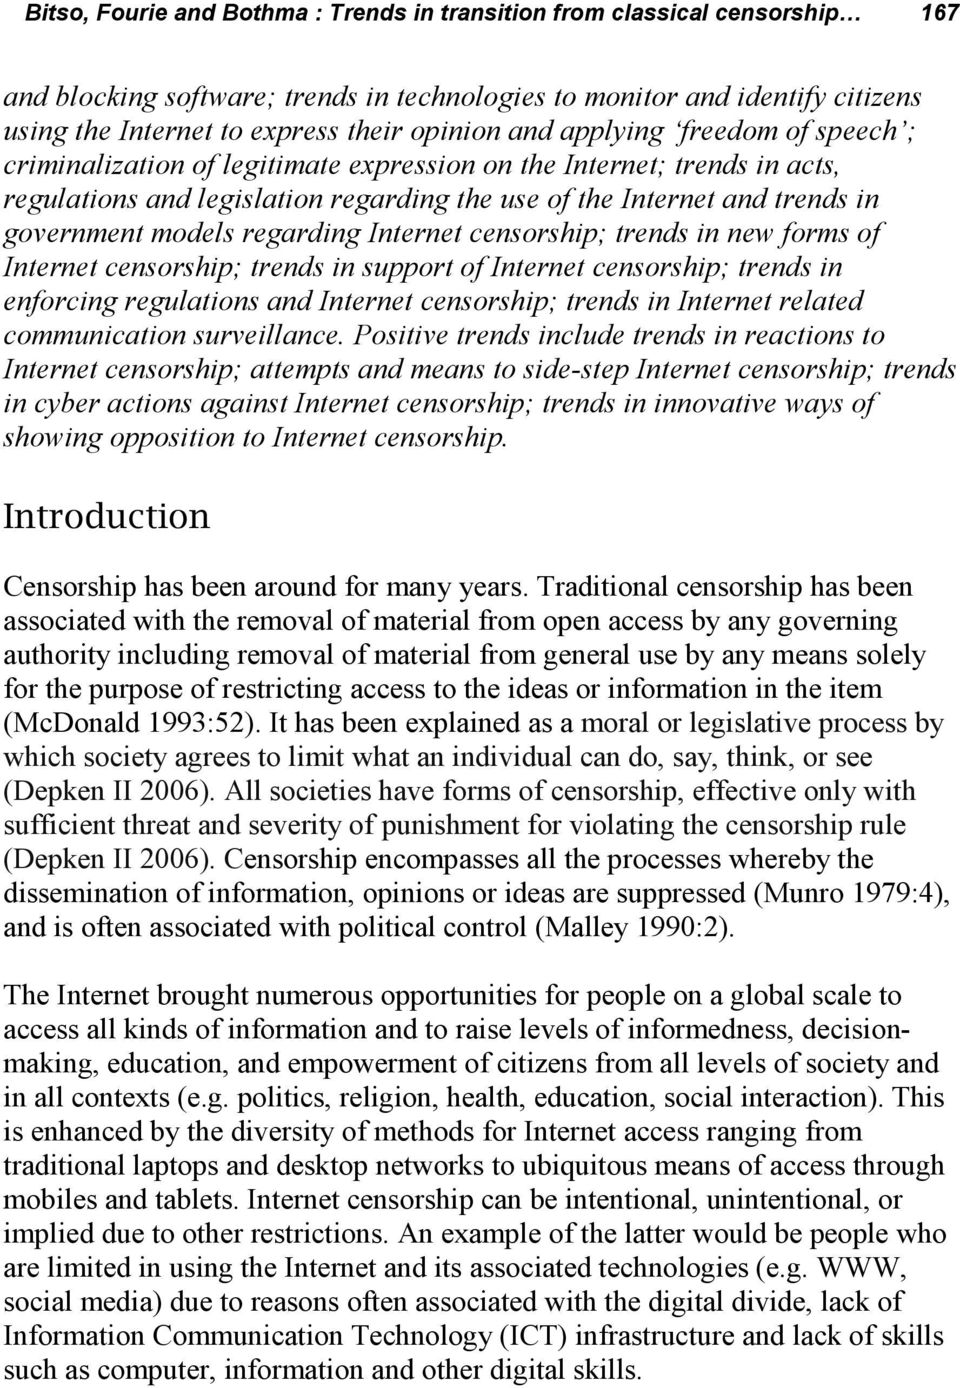 The gradual introduction of Internet censorship in Russia 95